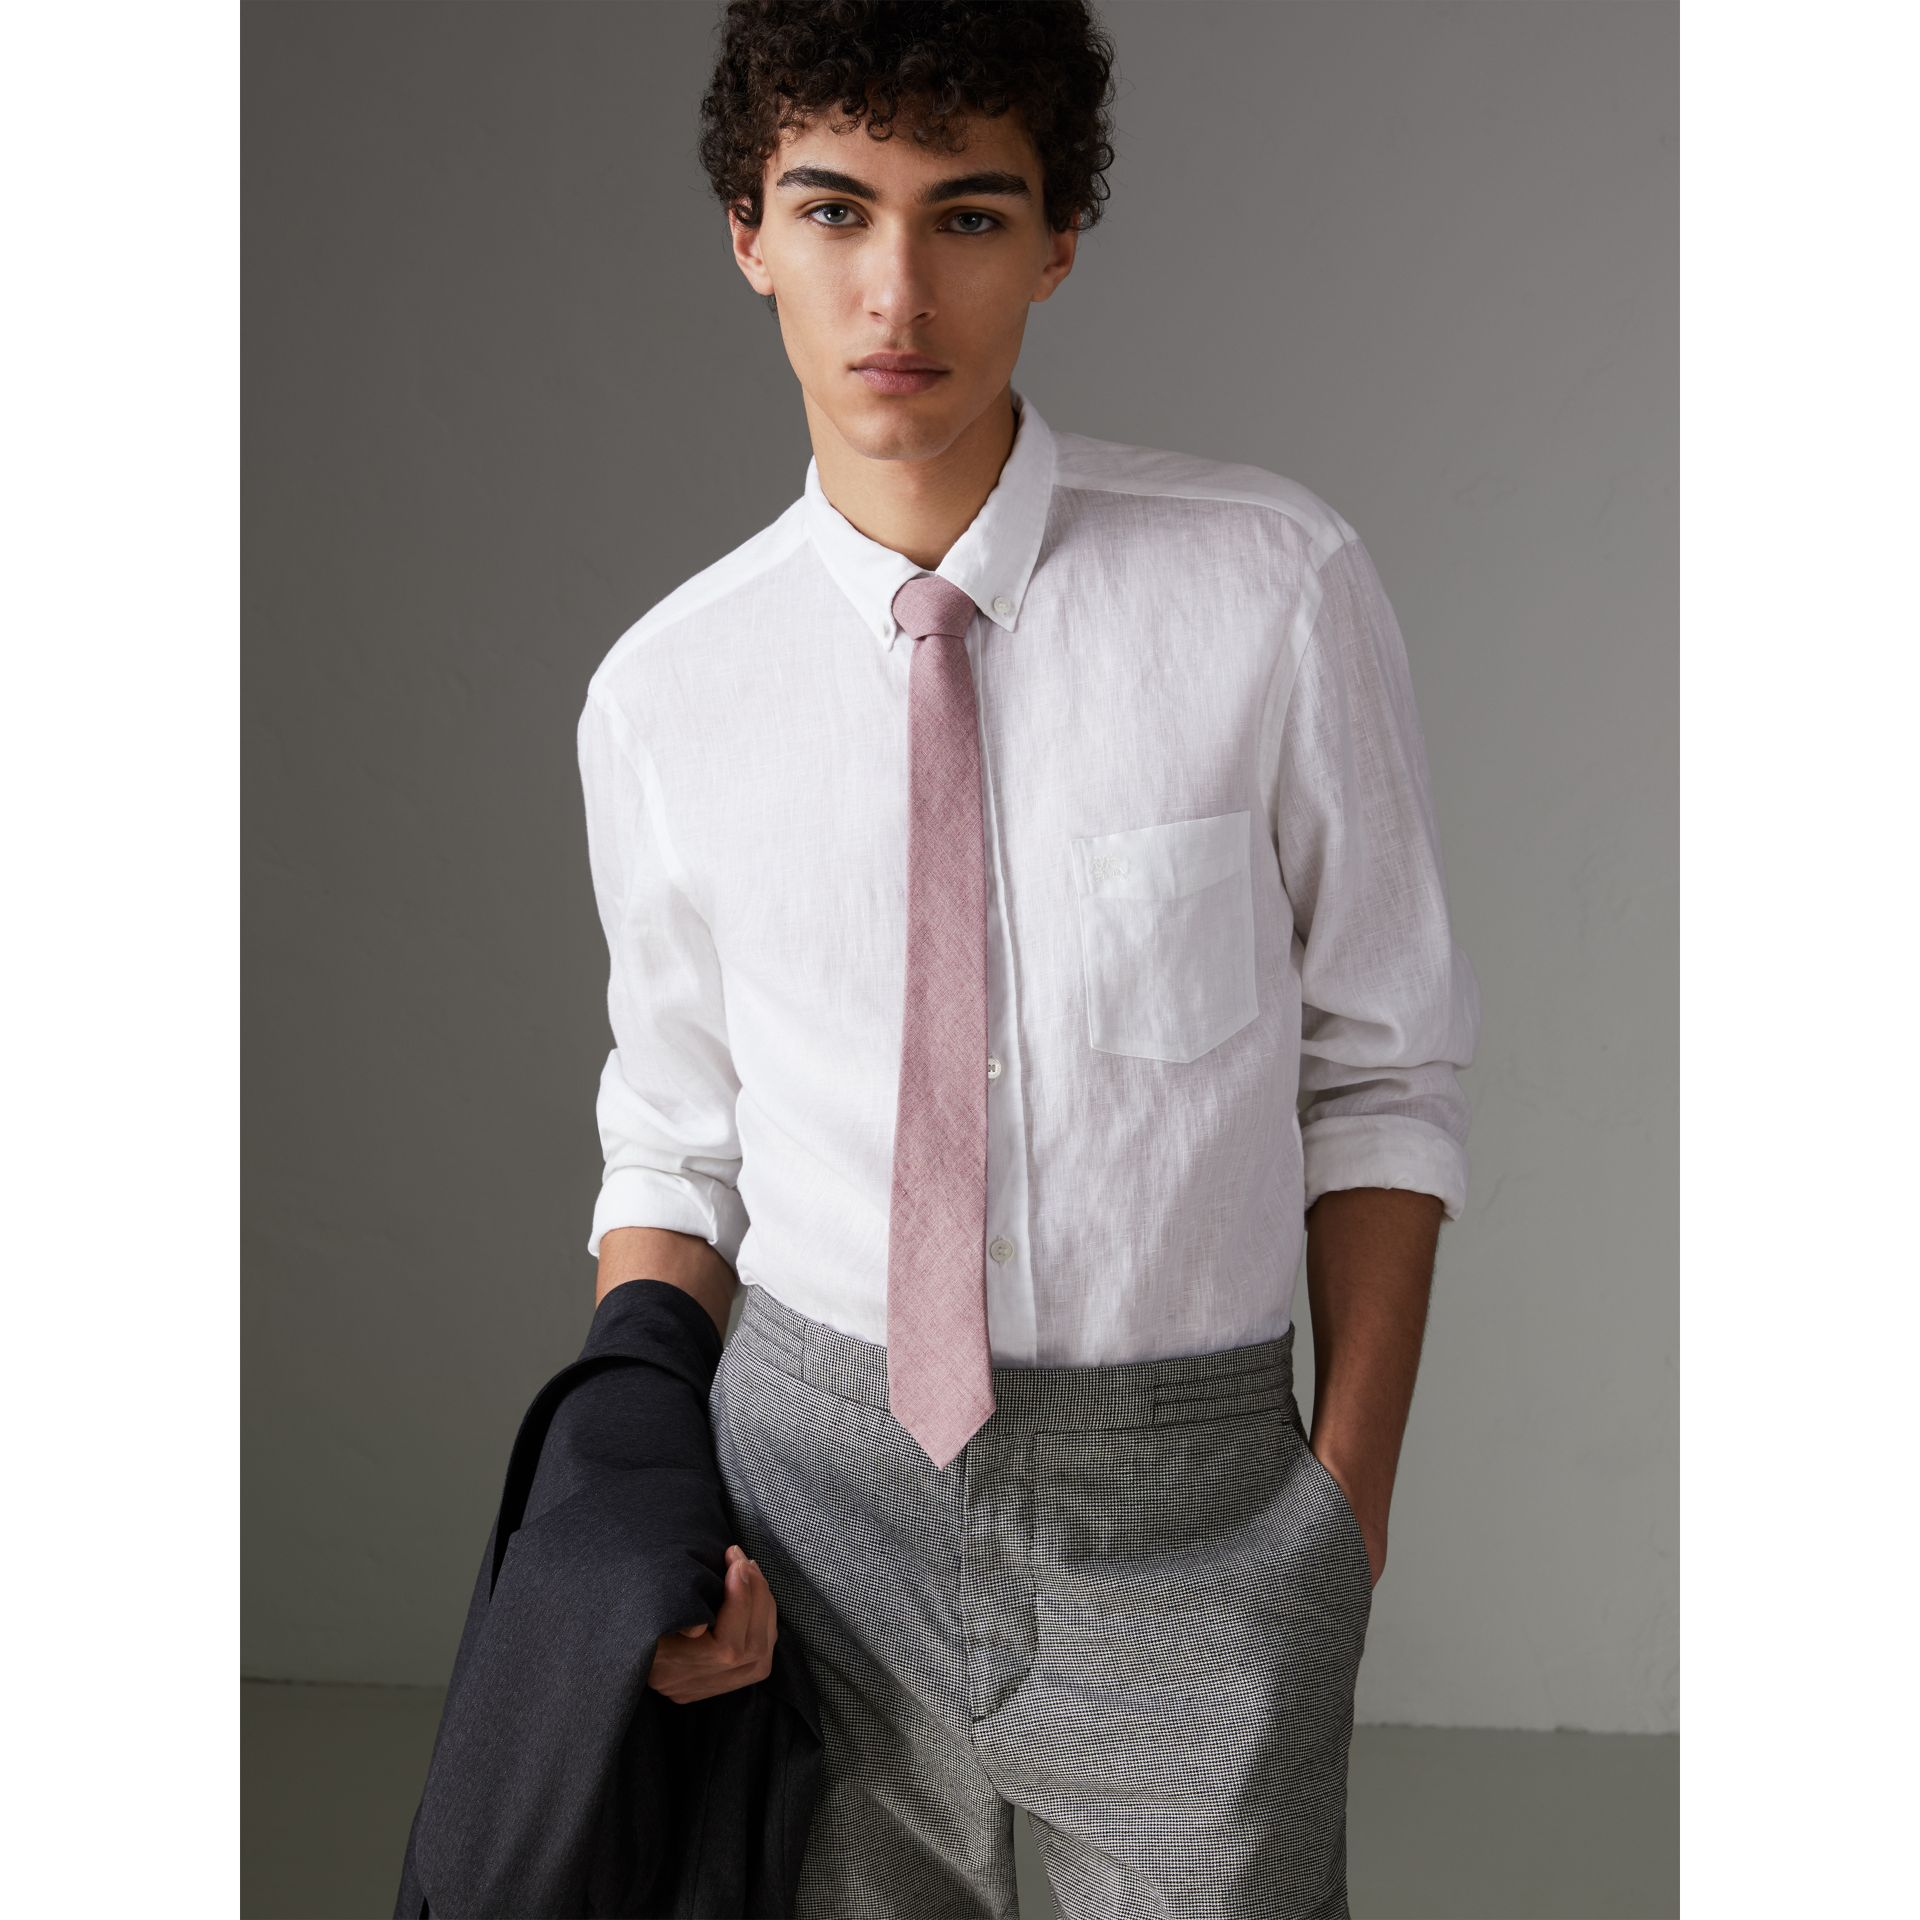 Slim Cut Linen Tie in Pink Heather - Men | Burberry Australia - gallery image 2